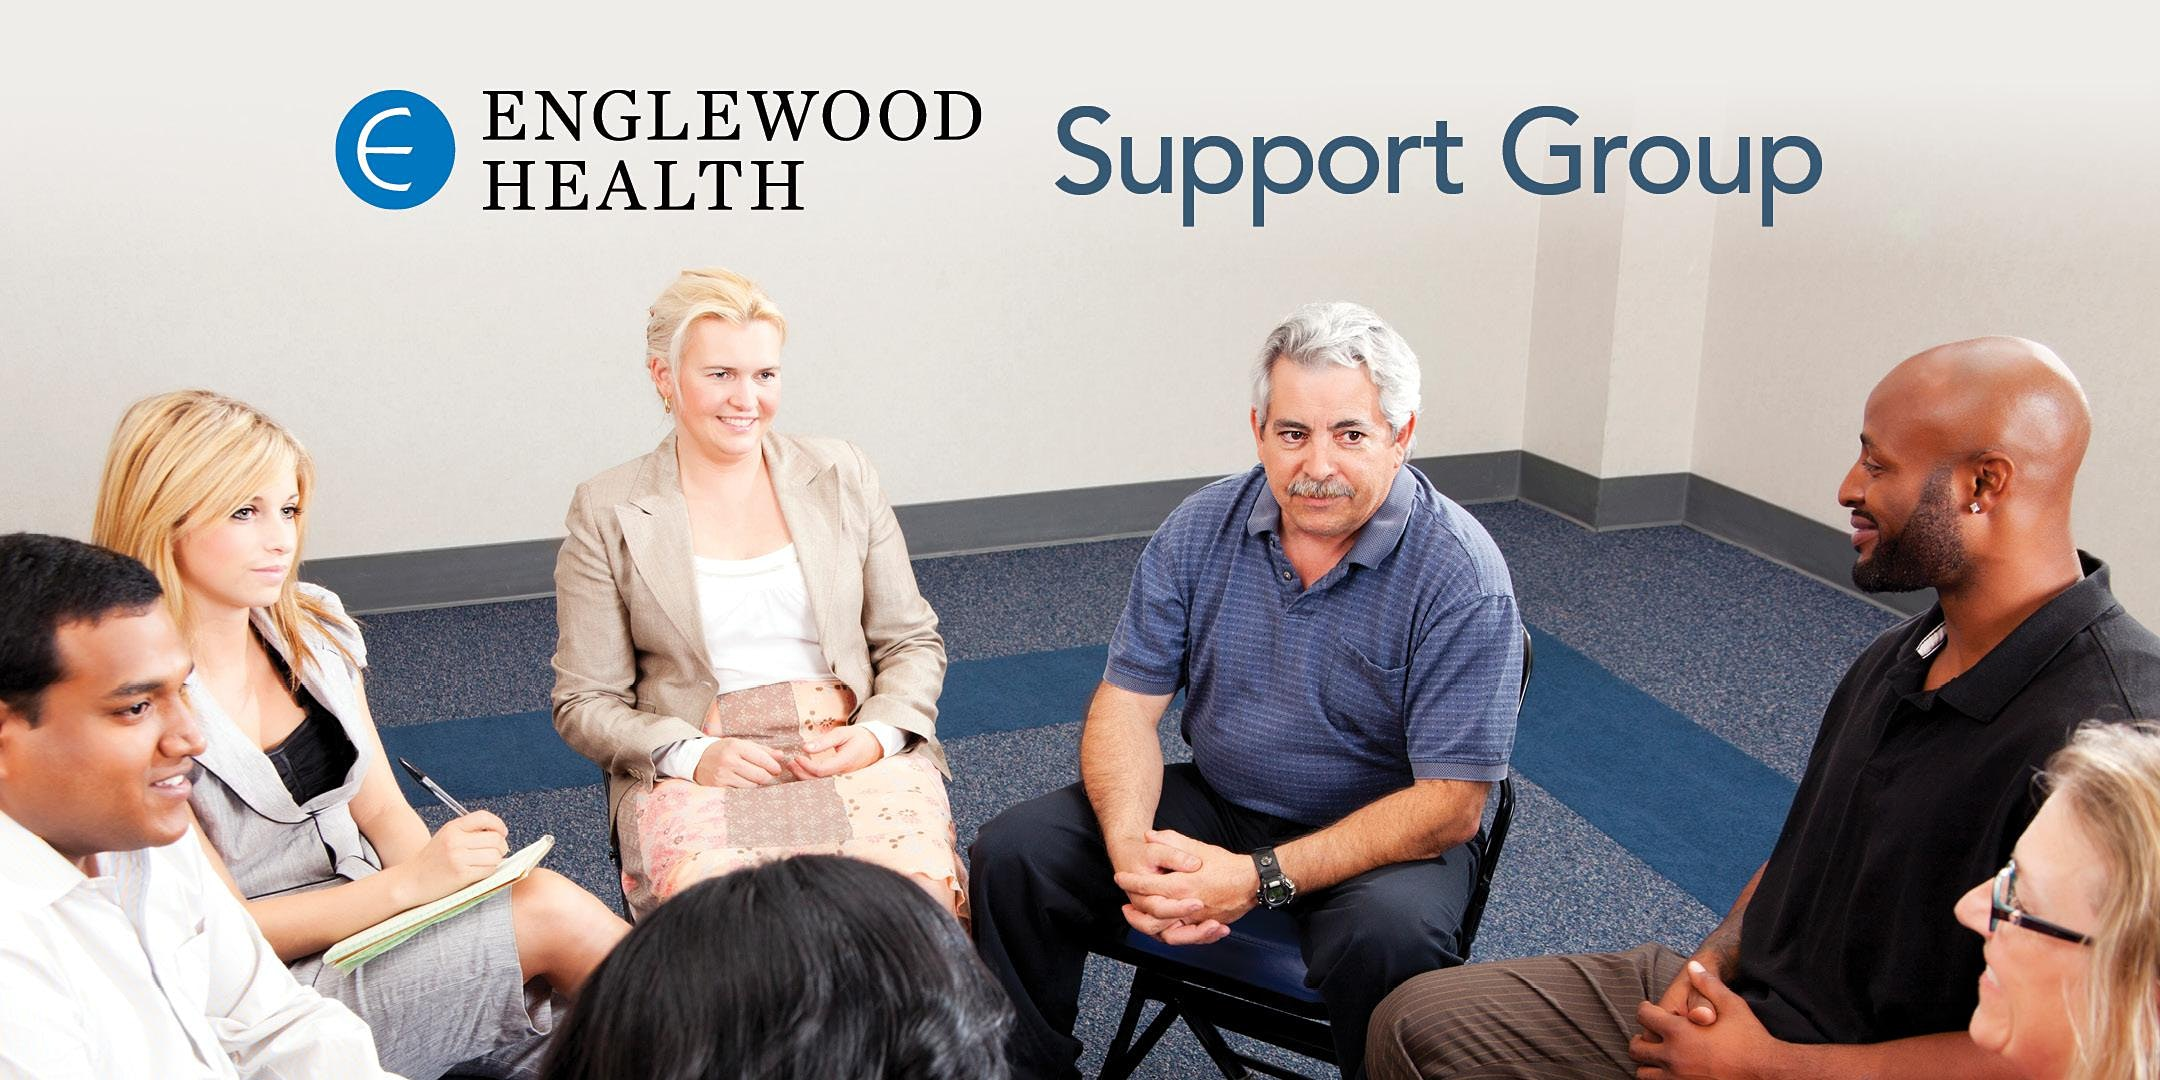 More info: Post-Bariatric Surgery Support Group